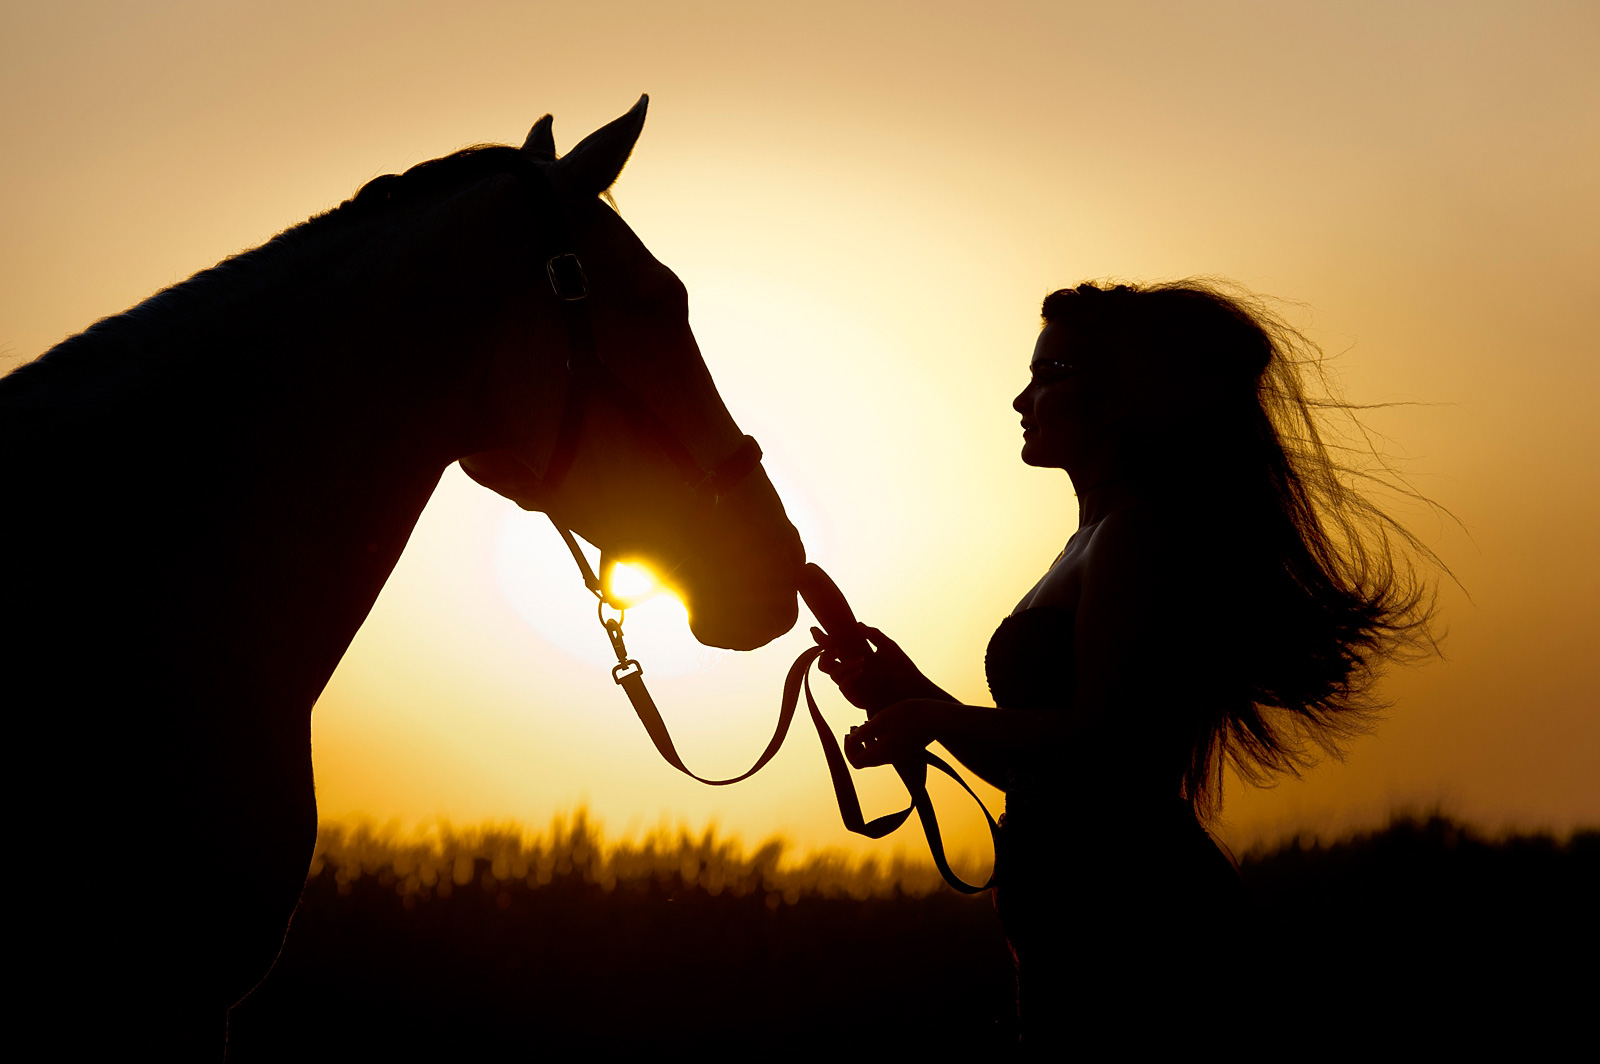 Sunset shot of girl and horse